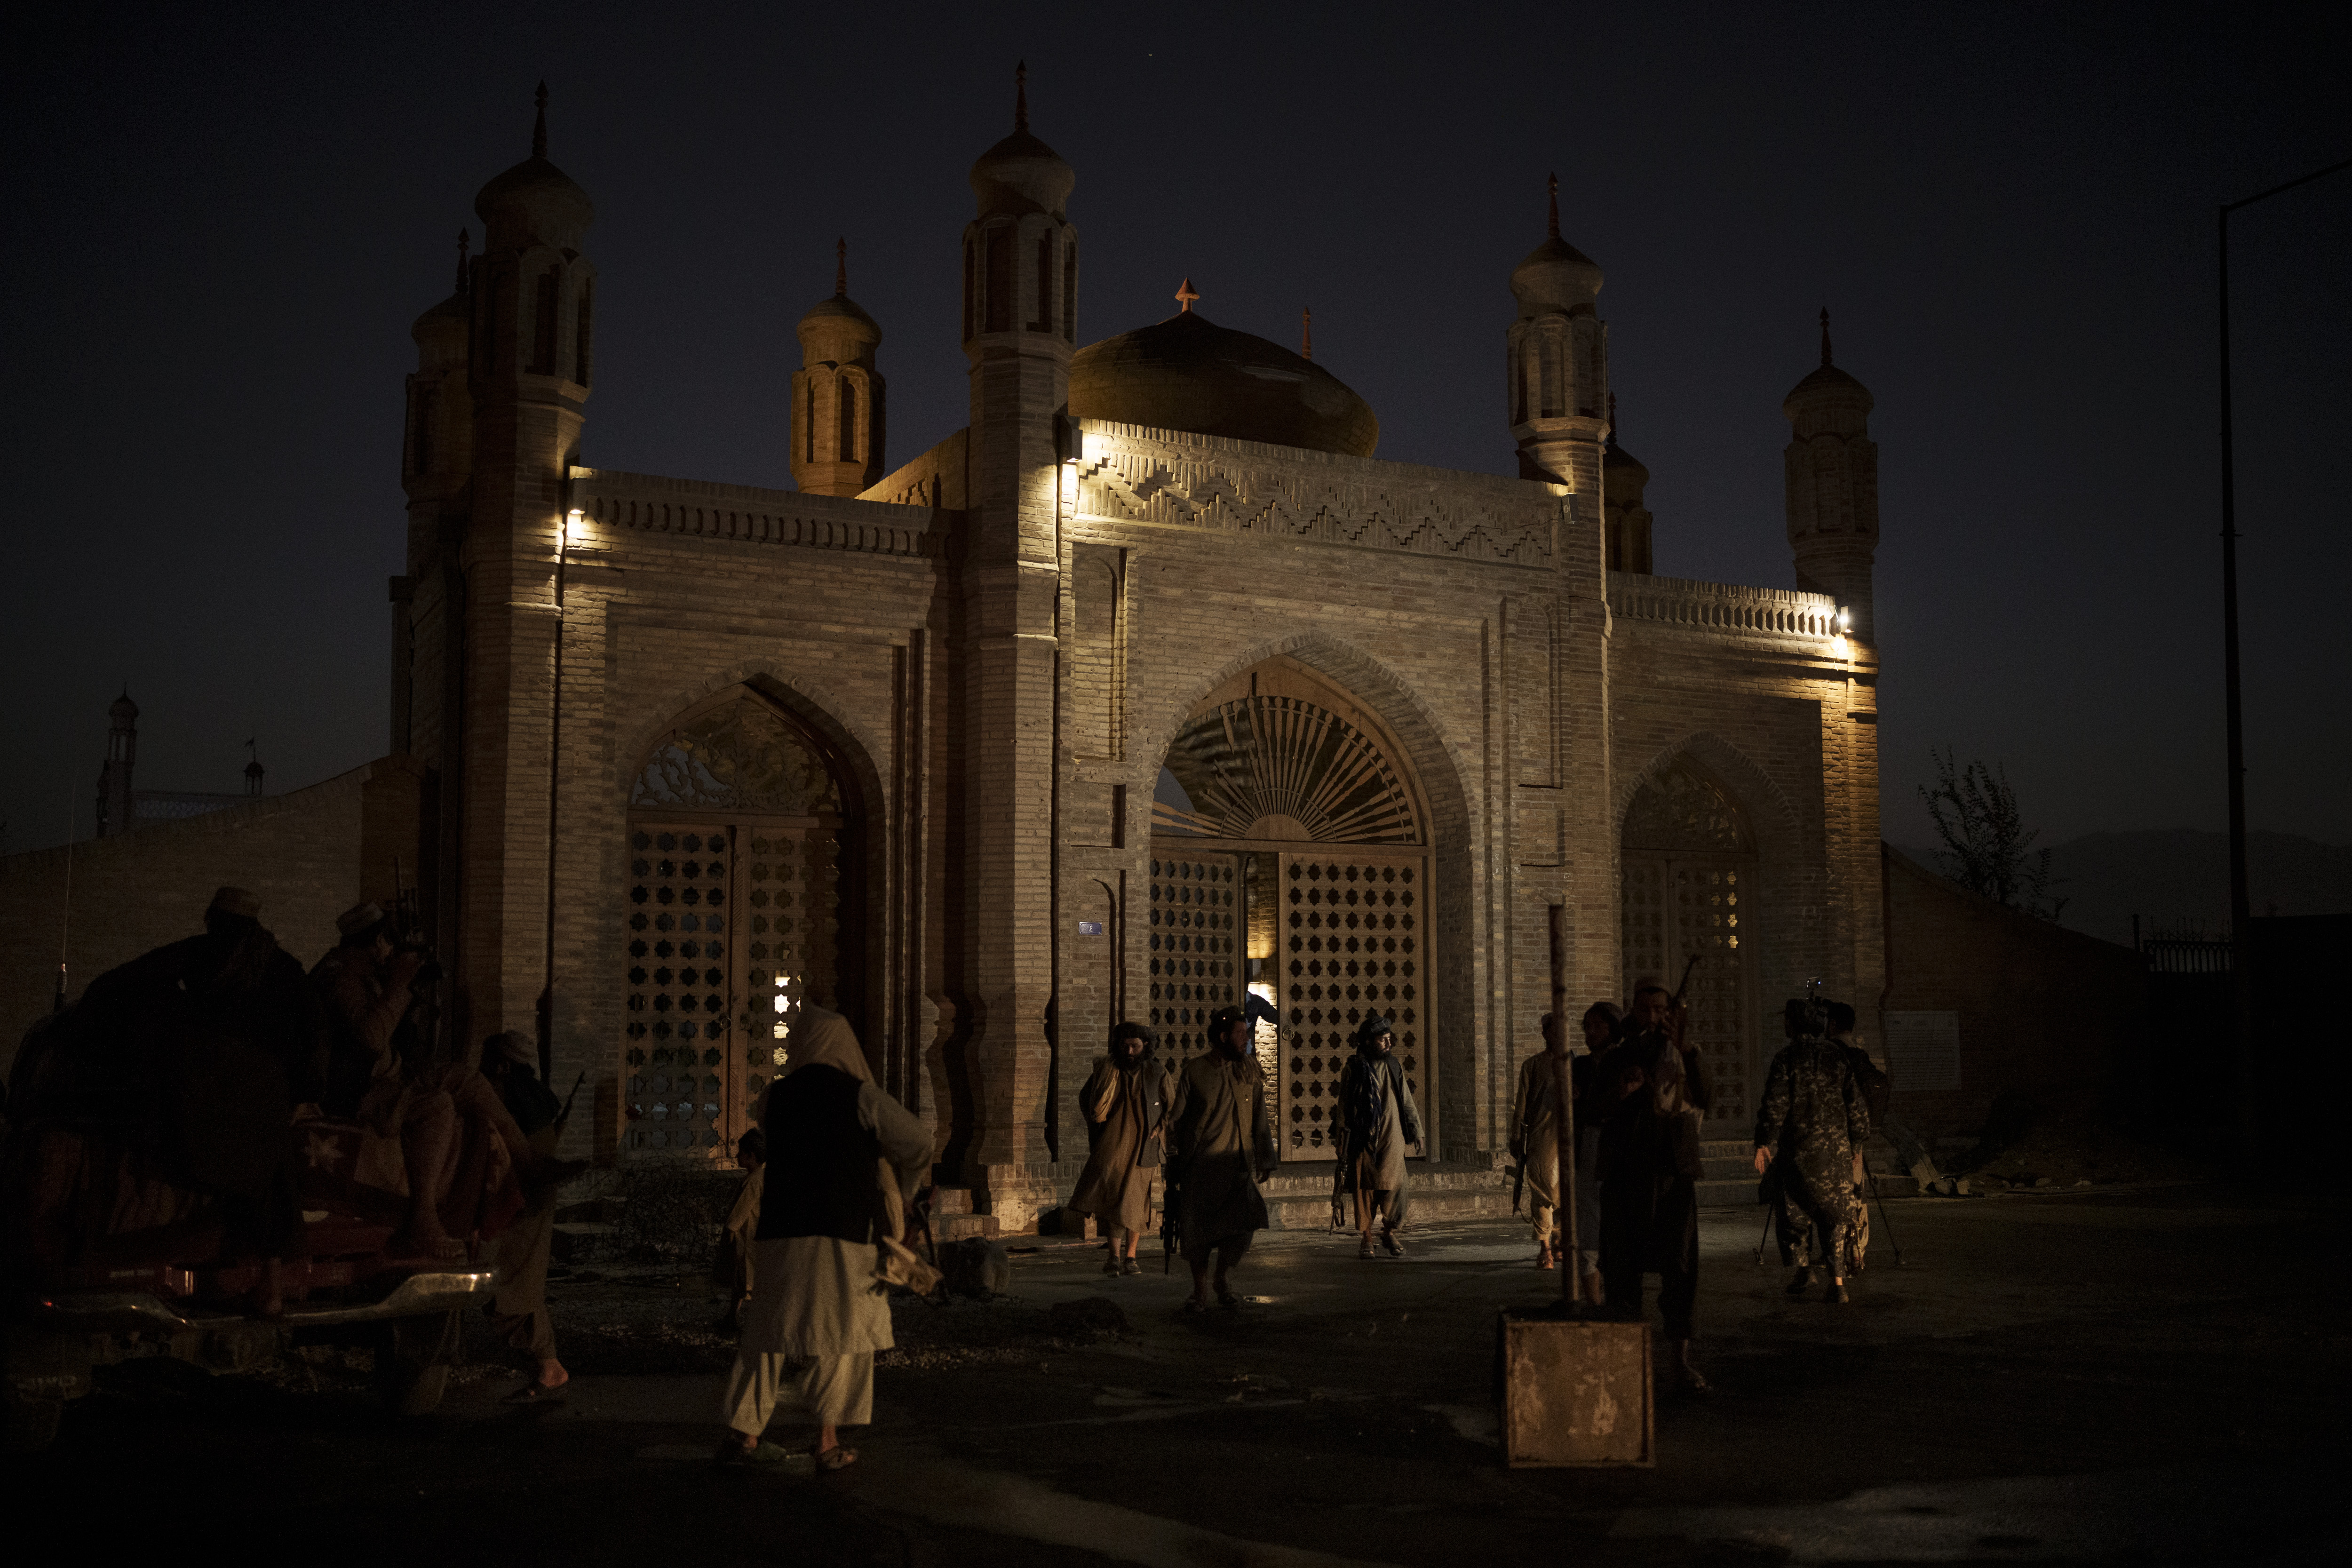 Taliban fighters walk at the entrance of the Eidgah Mosque after an explosion in Kabul, Afghanistan, on Oct. 3, 2021.